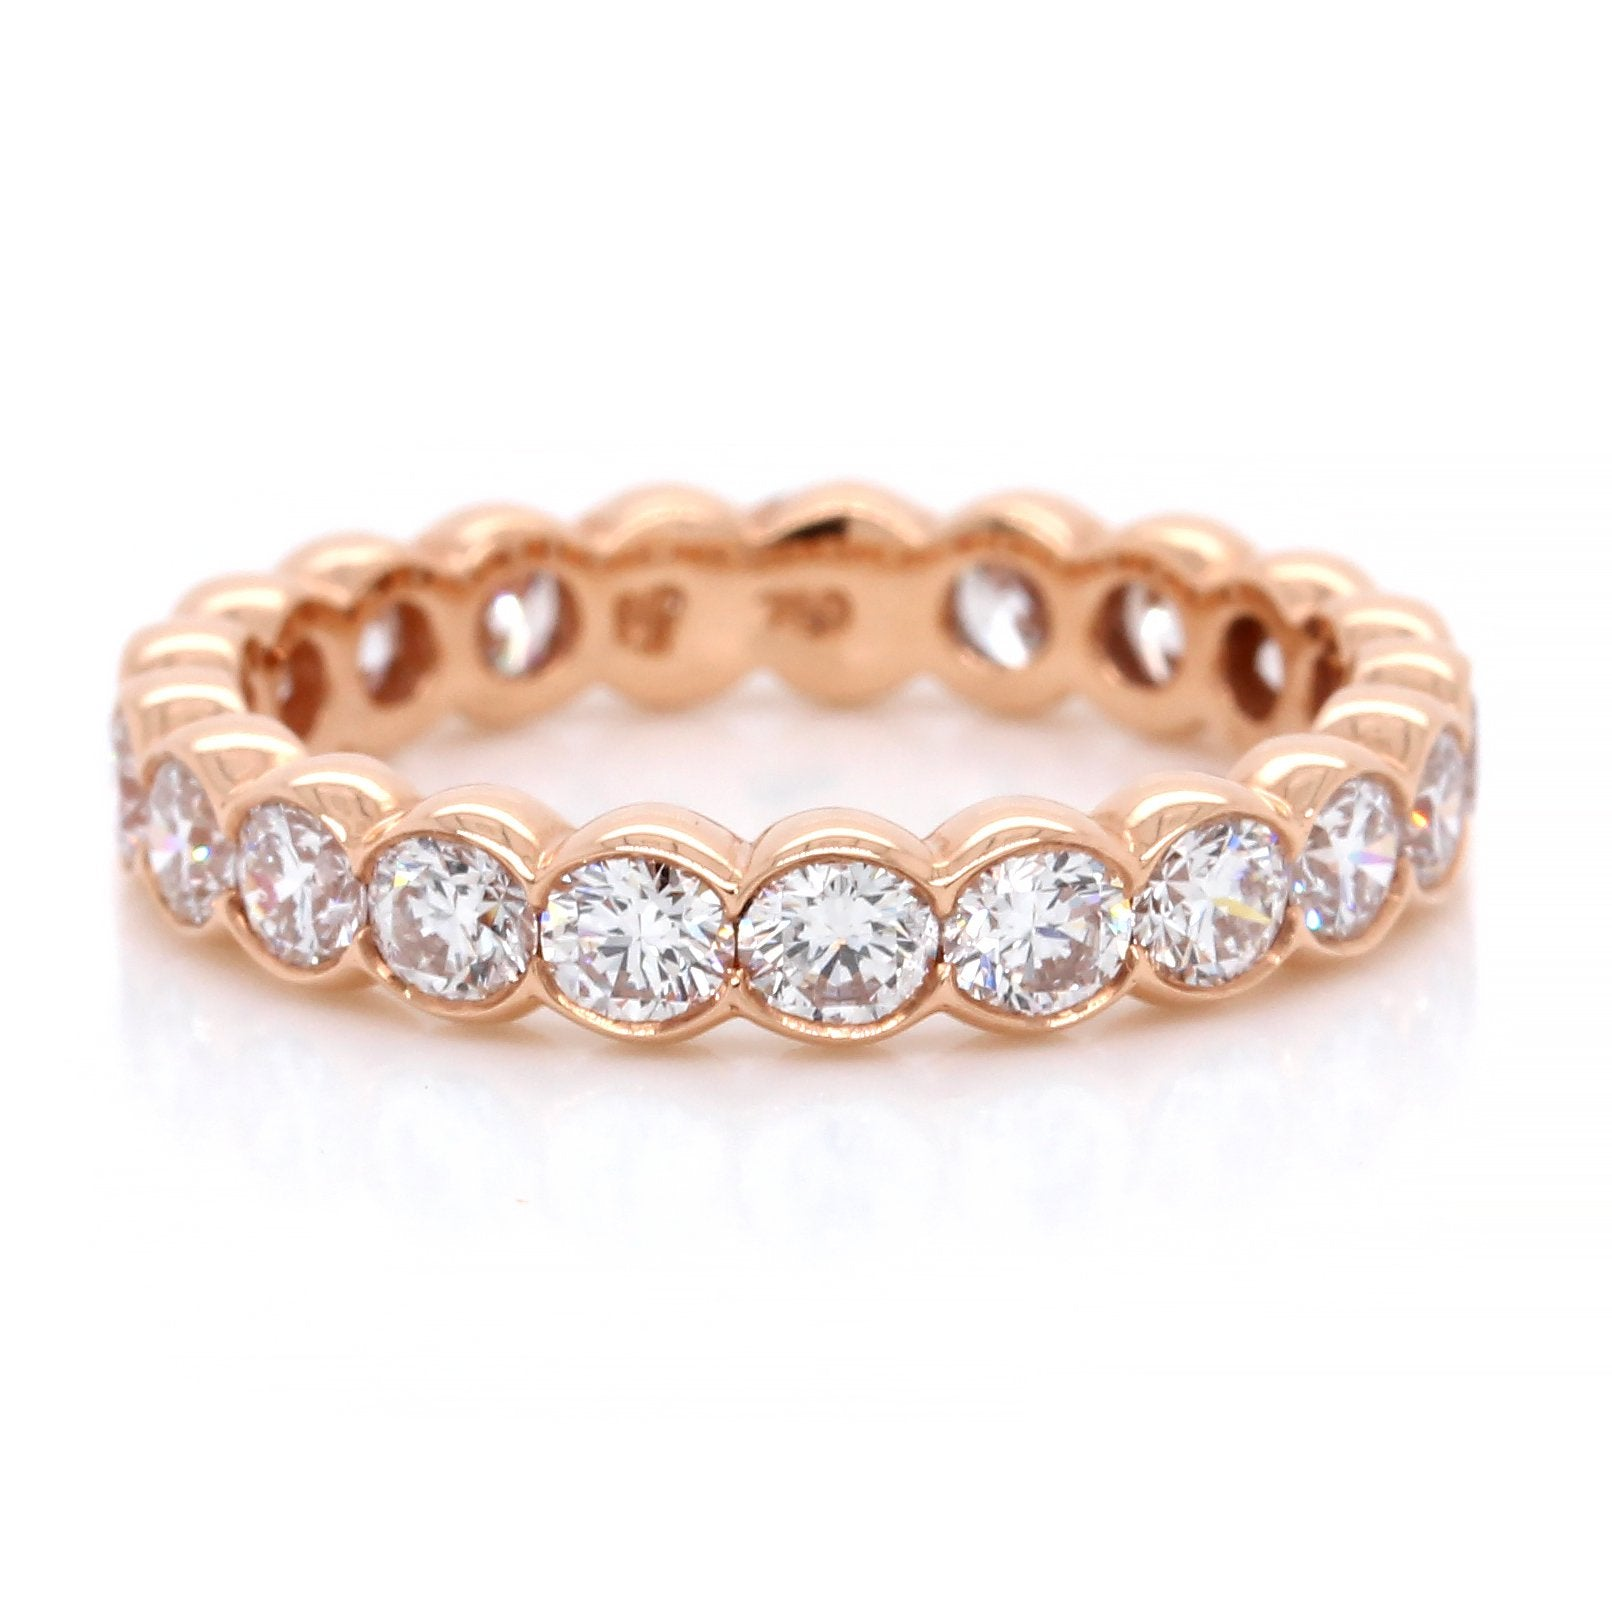 18K Rose Gold Diamond Eternity Band